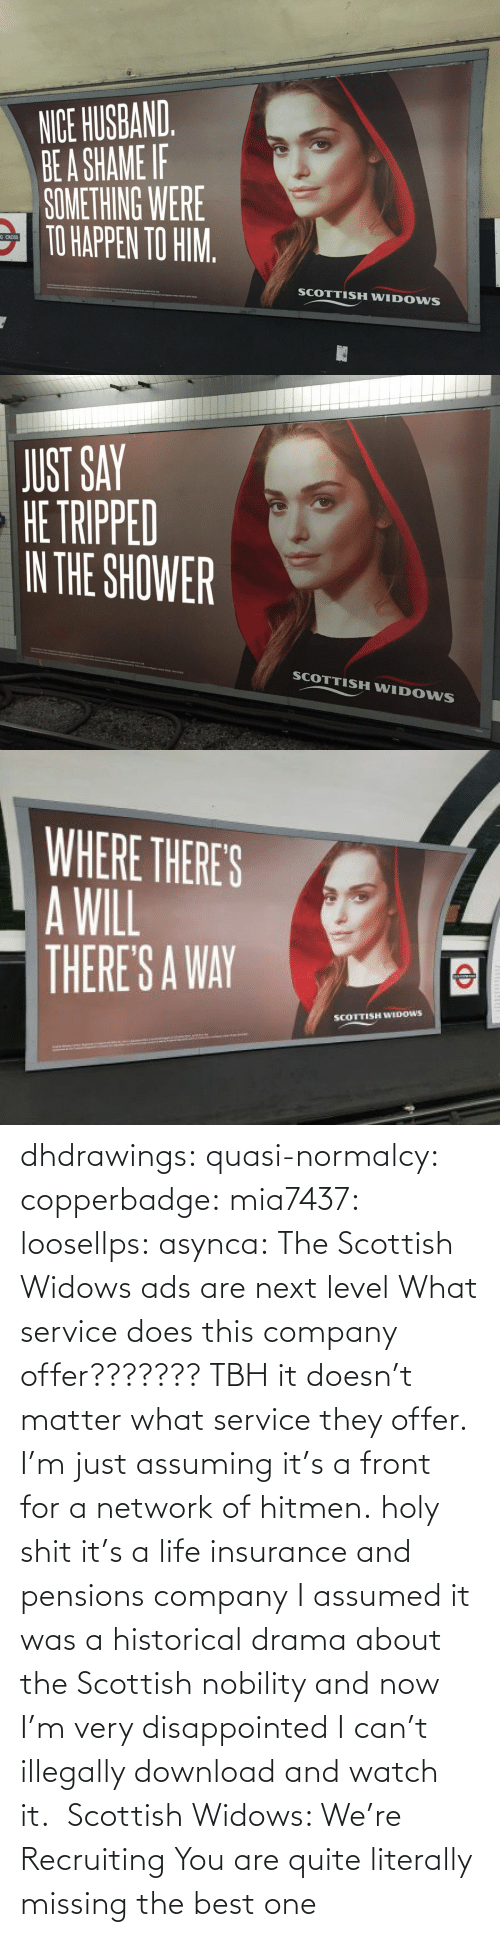 Offer: dhdrawings:  quasi-normalcy:  copperbadge:  mia7437:  loosellps:  asynca: The Scottish Widows ads are next level What service does this company offer??????? TBH it doesn't matter what service they offer. I'm just assuming it's a front for a network of hitmen.  holy shit it's a life insurance and pensions company  I assumed it was a historical drama about the Scottish nobility and now I'm very disappointed I can't illegally download and watch it.     Scottish Widows: We're Recruiting    You are quite literally missing the best one